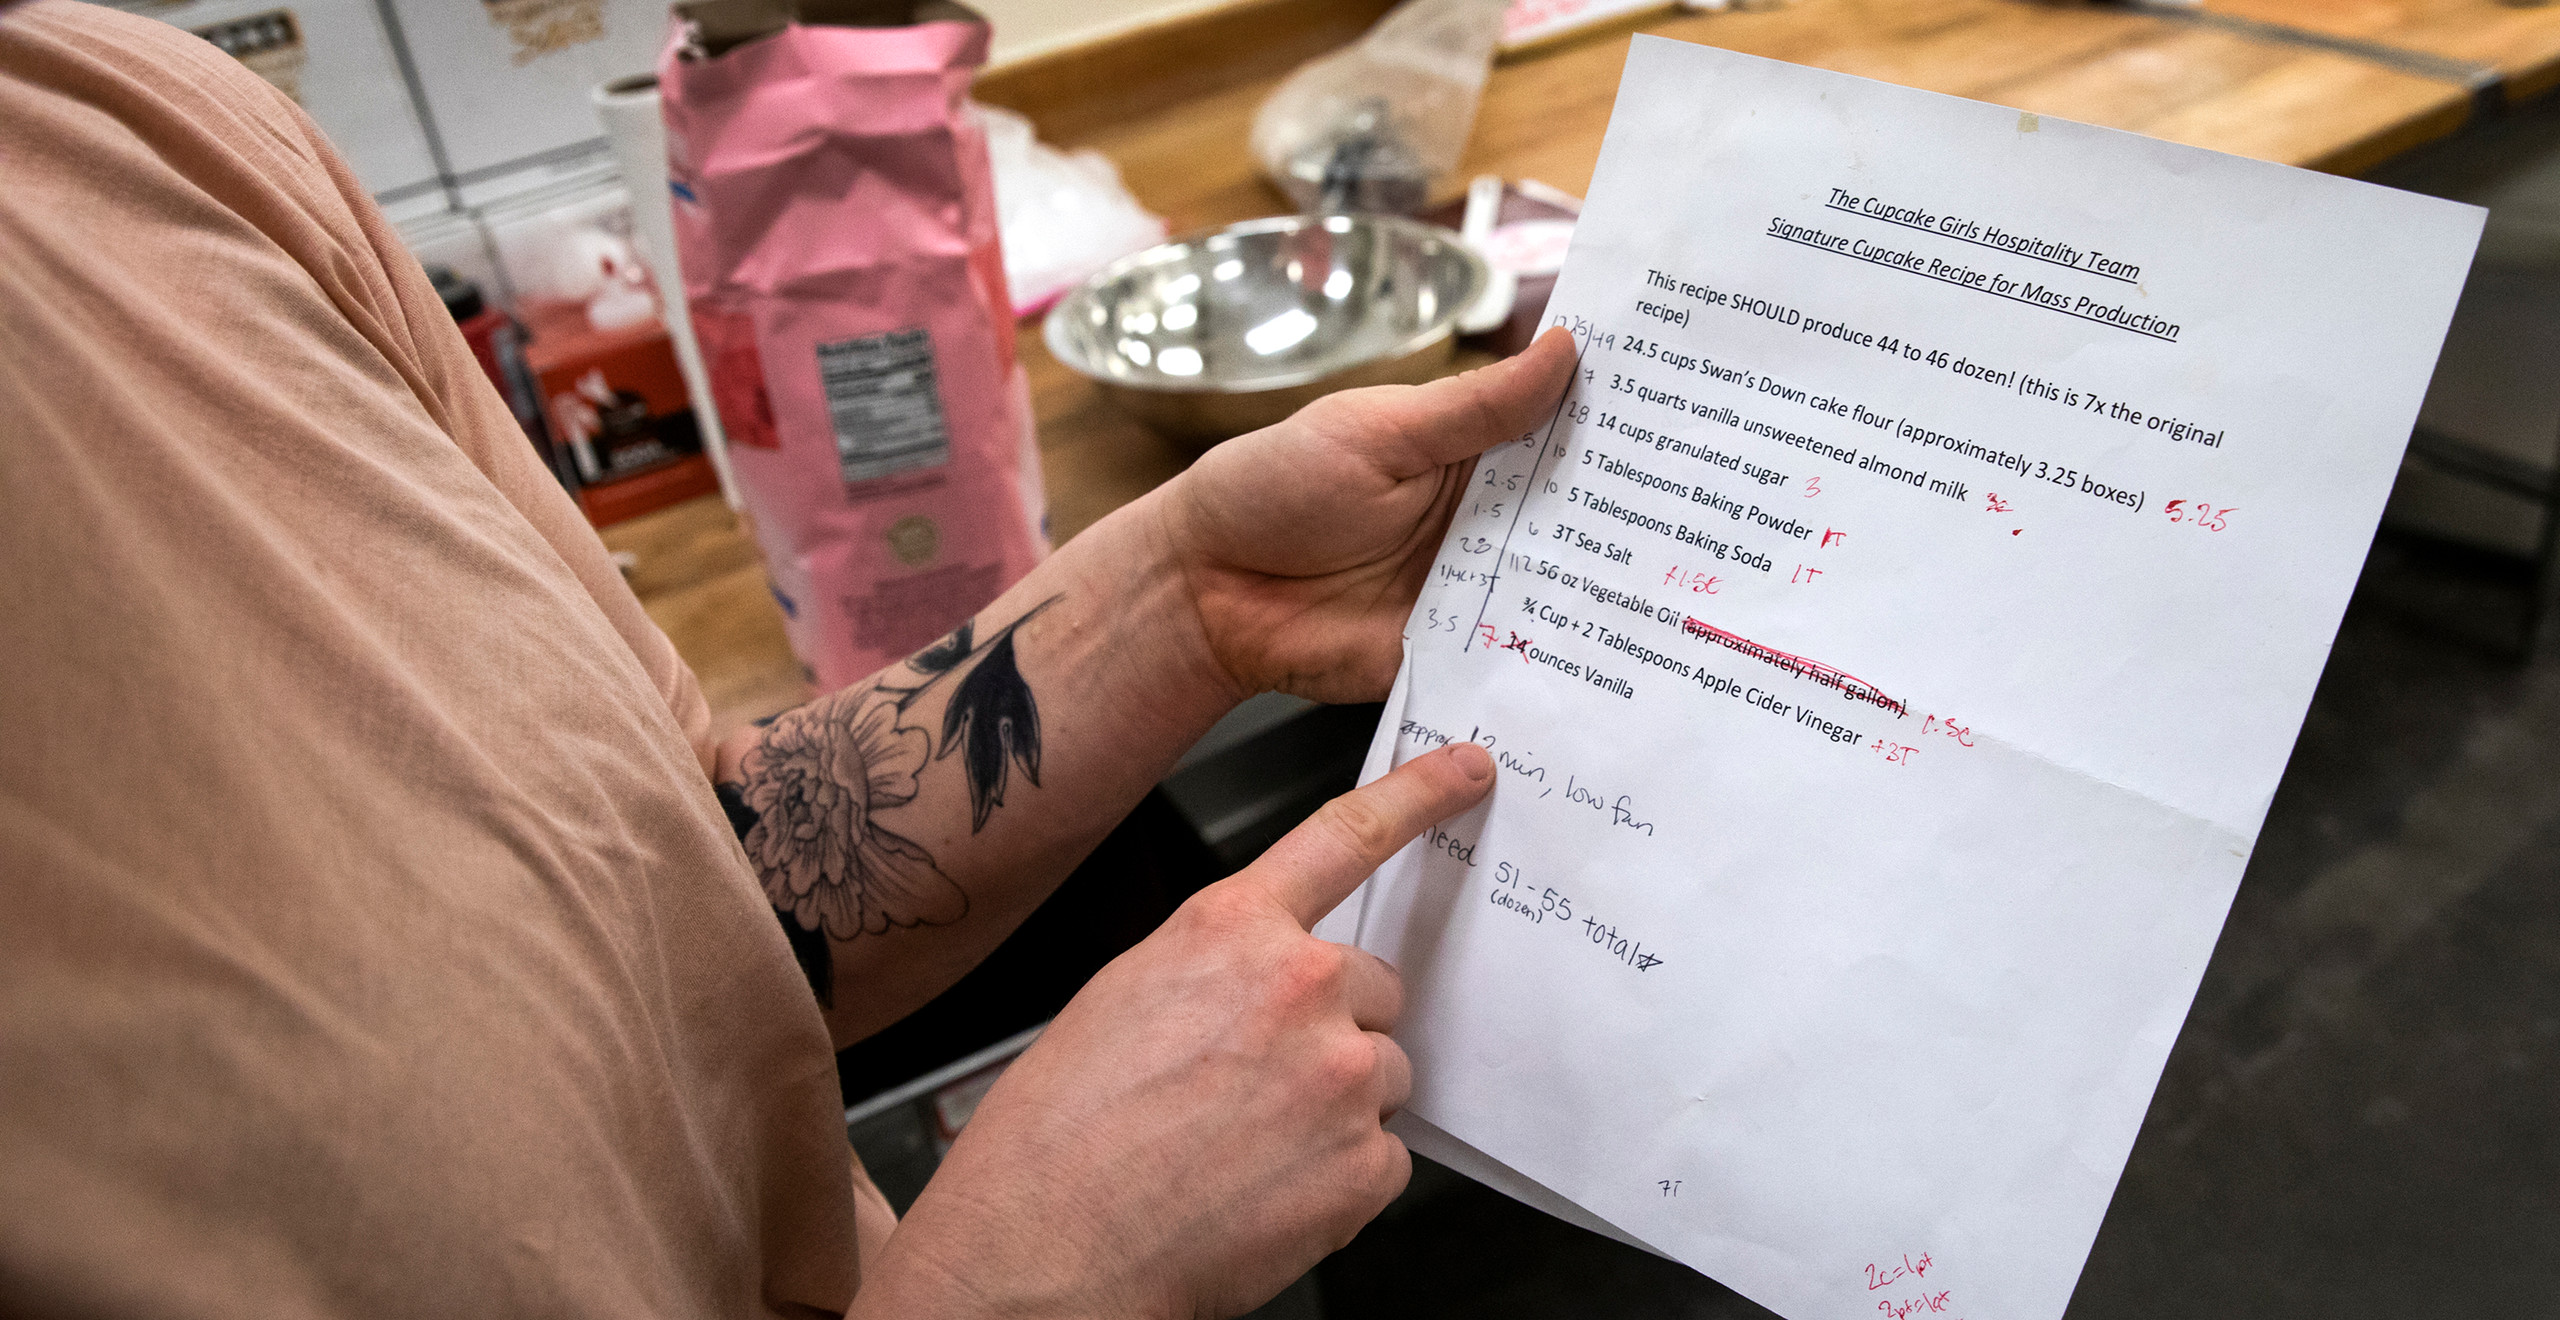 """A closeup of someone's hands holding a recipe that reads """"The Cupcake Girls Hospitality Team Signature Cupcake Recipe for Mass Production."""" In the background you can see a pink bag of sugar and a silver mixing bowl."""